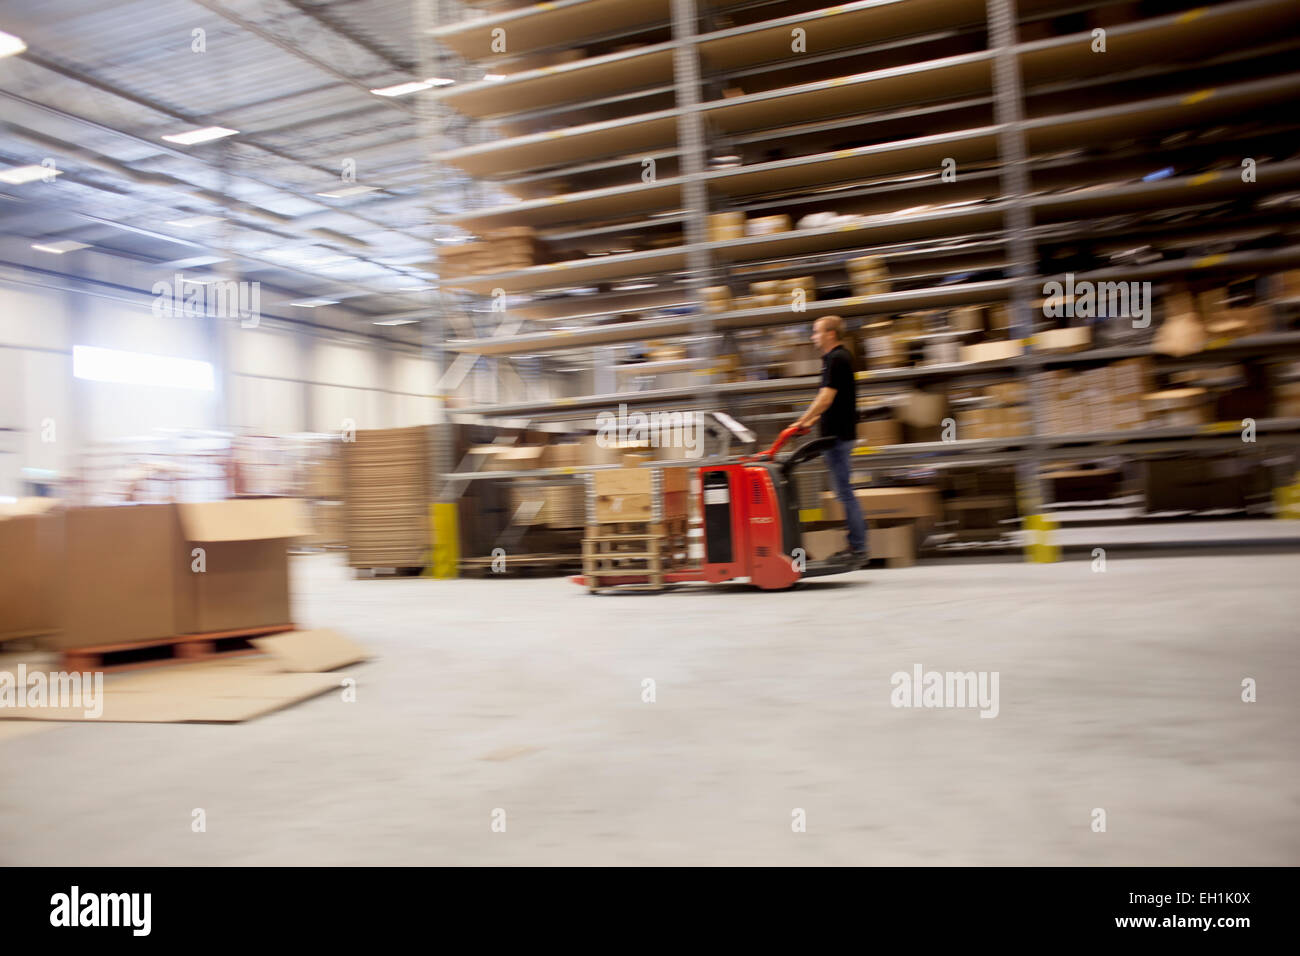 Man driving forklift truck in factory warehouse - Stock Image